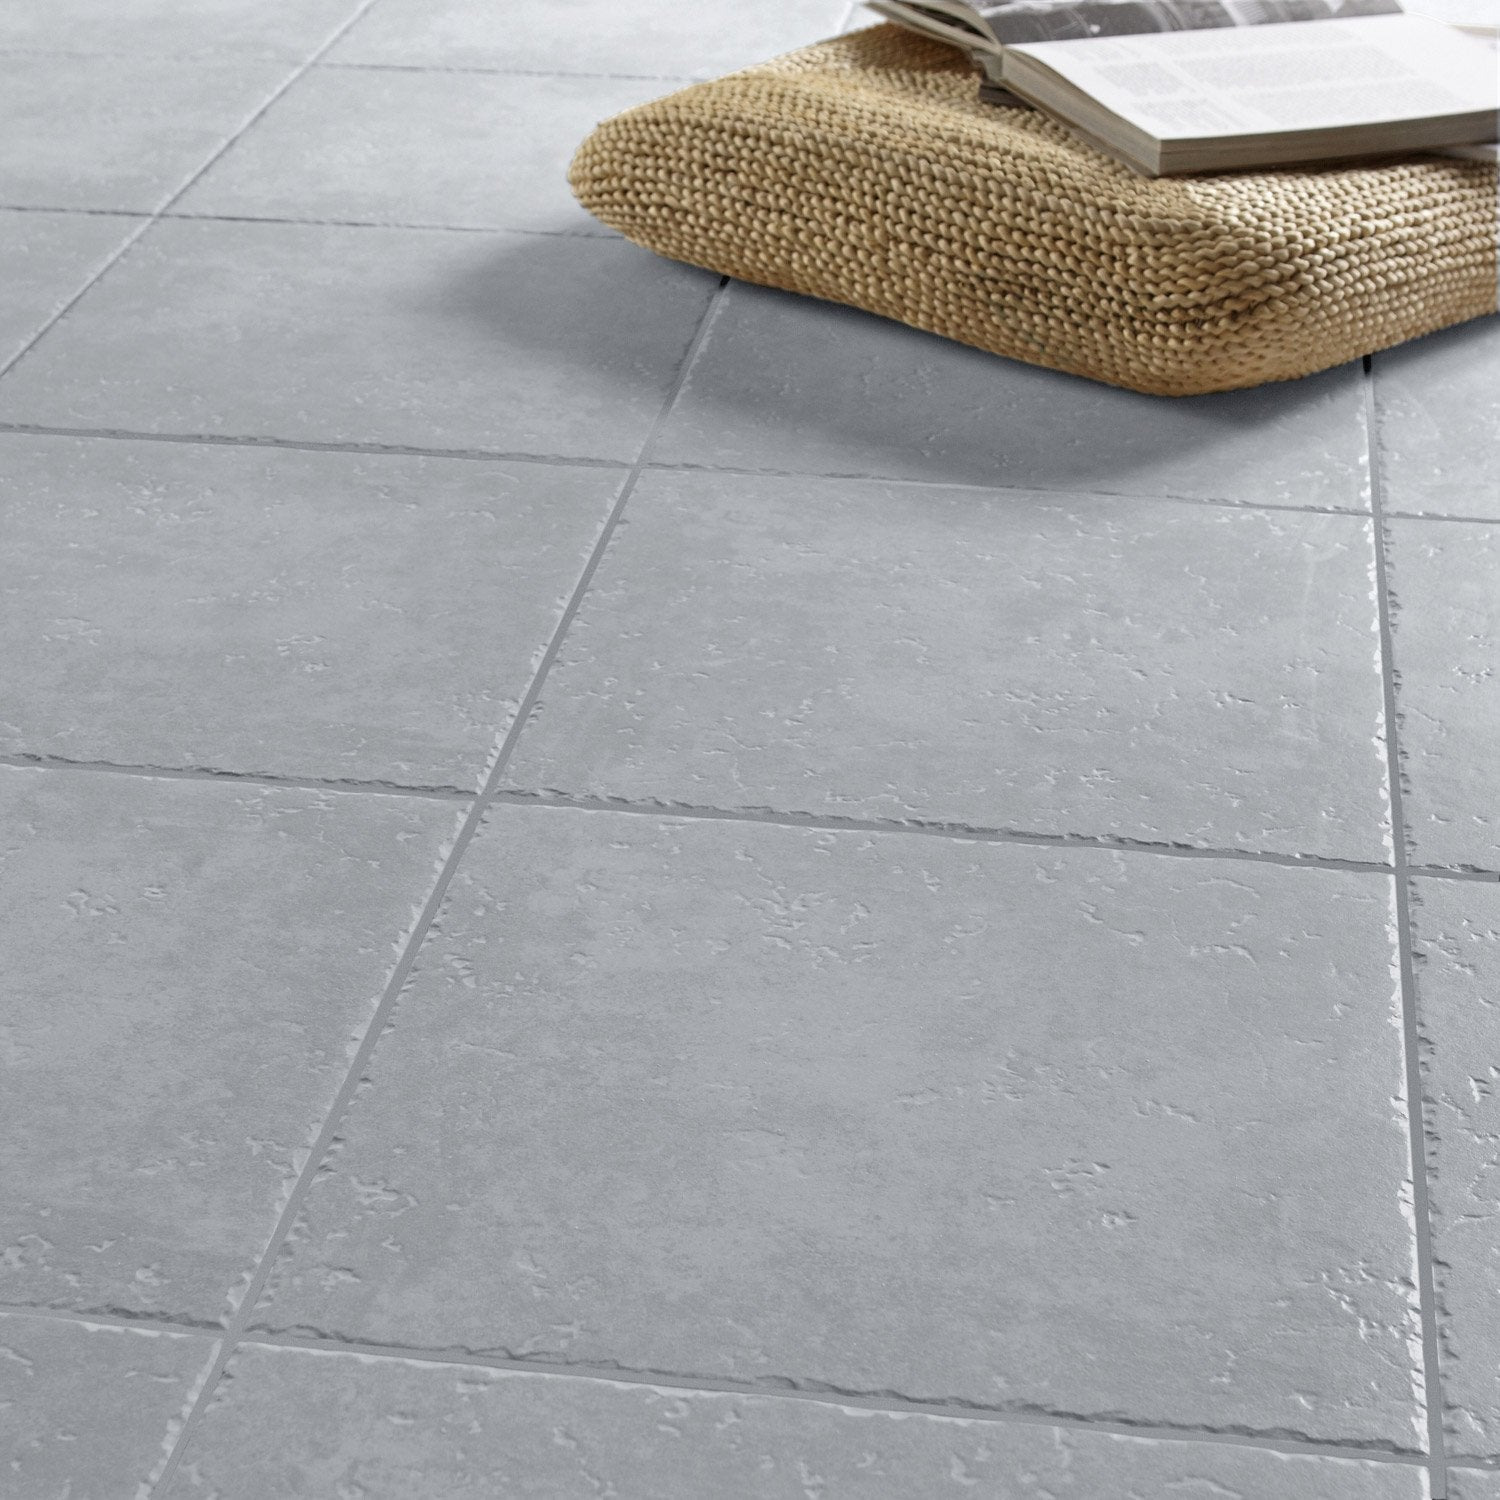 Carrelage sol gris effet pierre michigan x cm for Carrelage sol exterieur leroy merlin